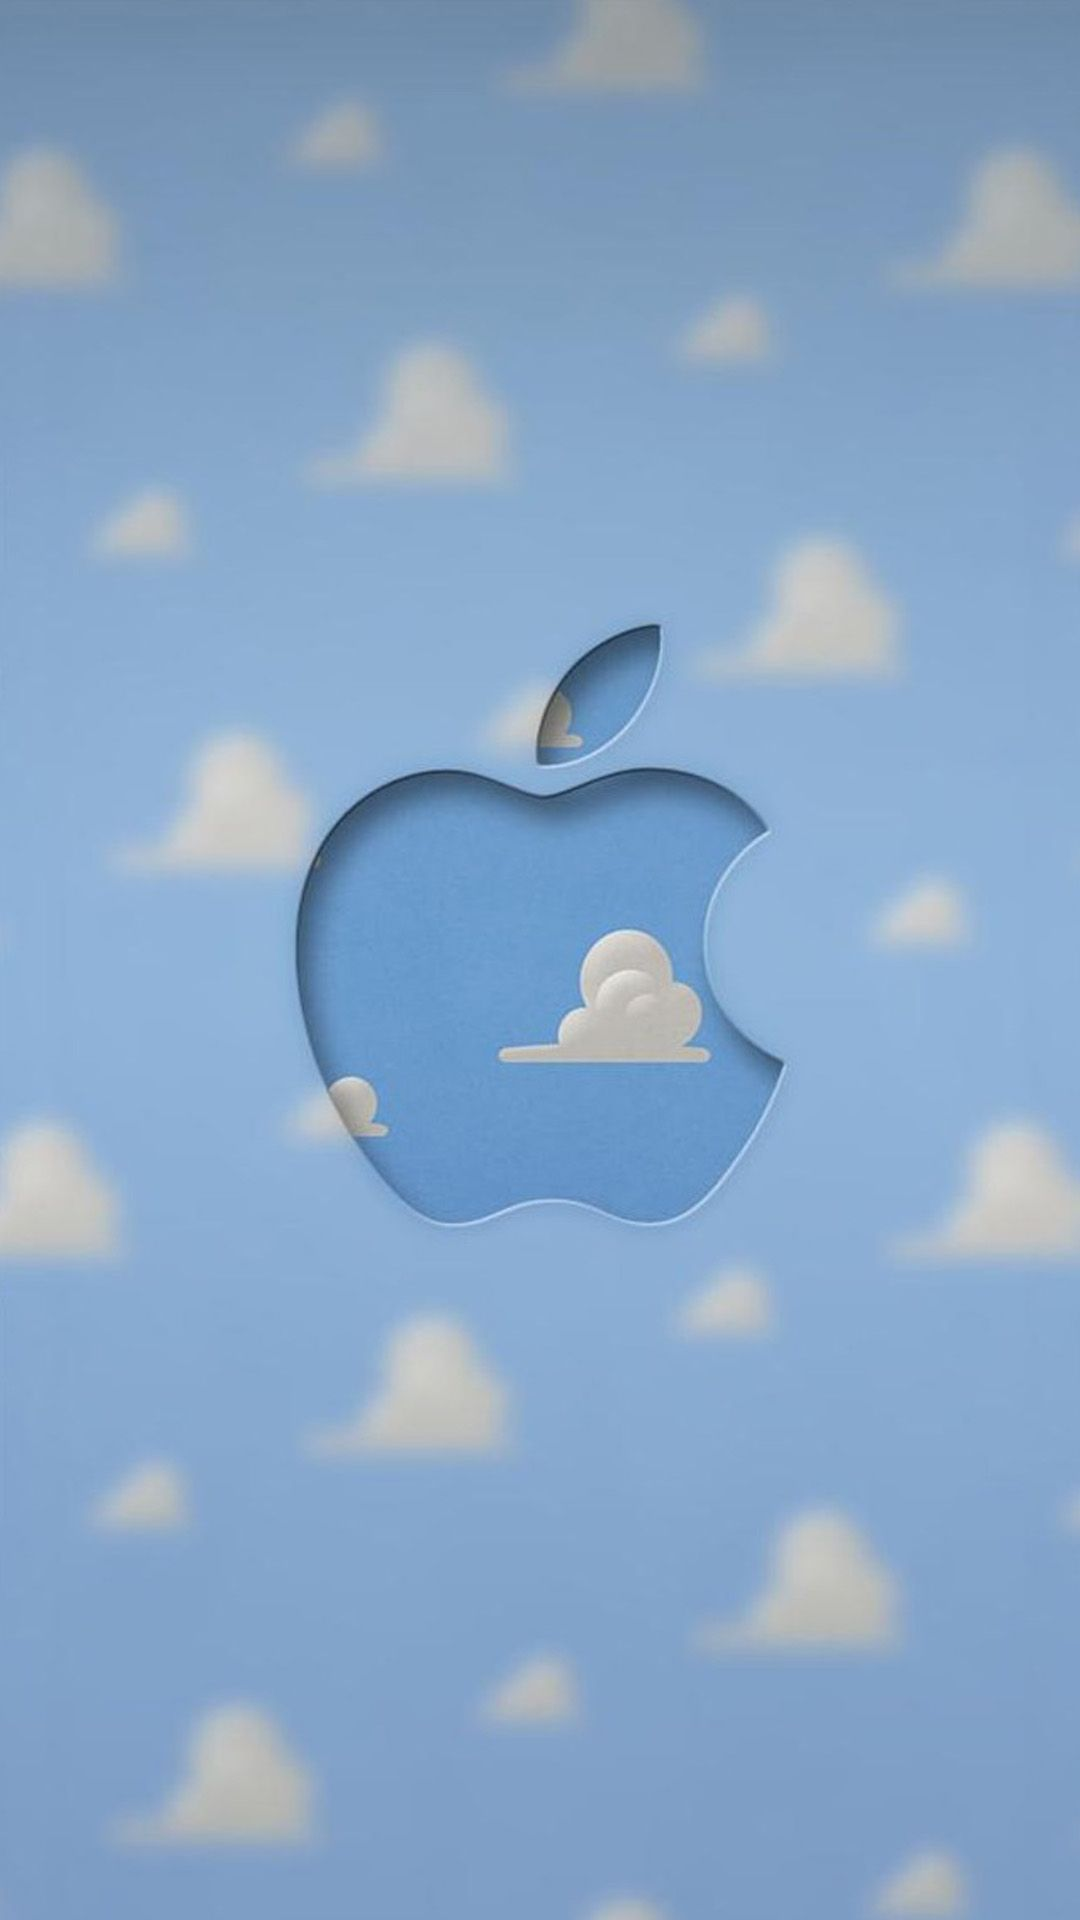 Apple iPhone Dynamic Wallpaper HD Bing images